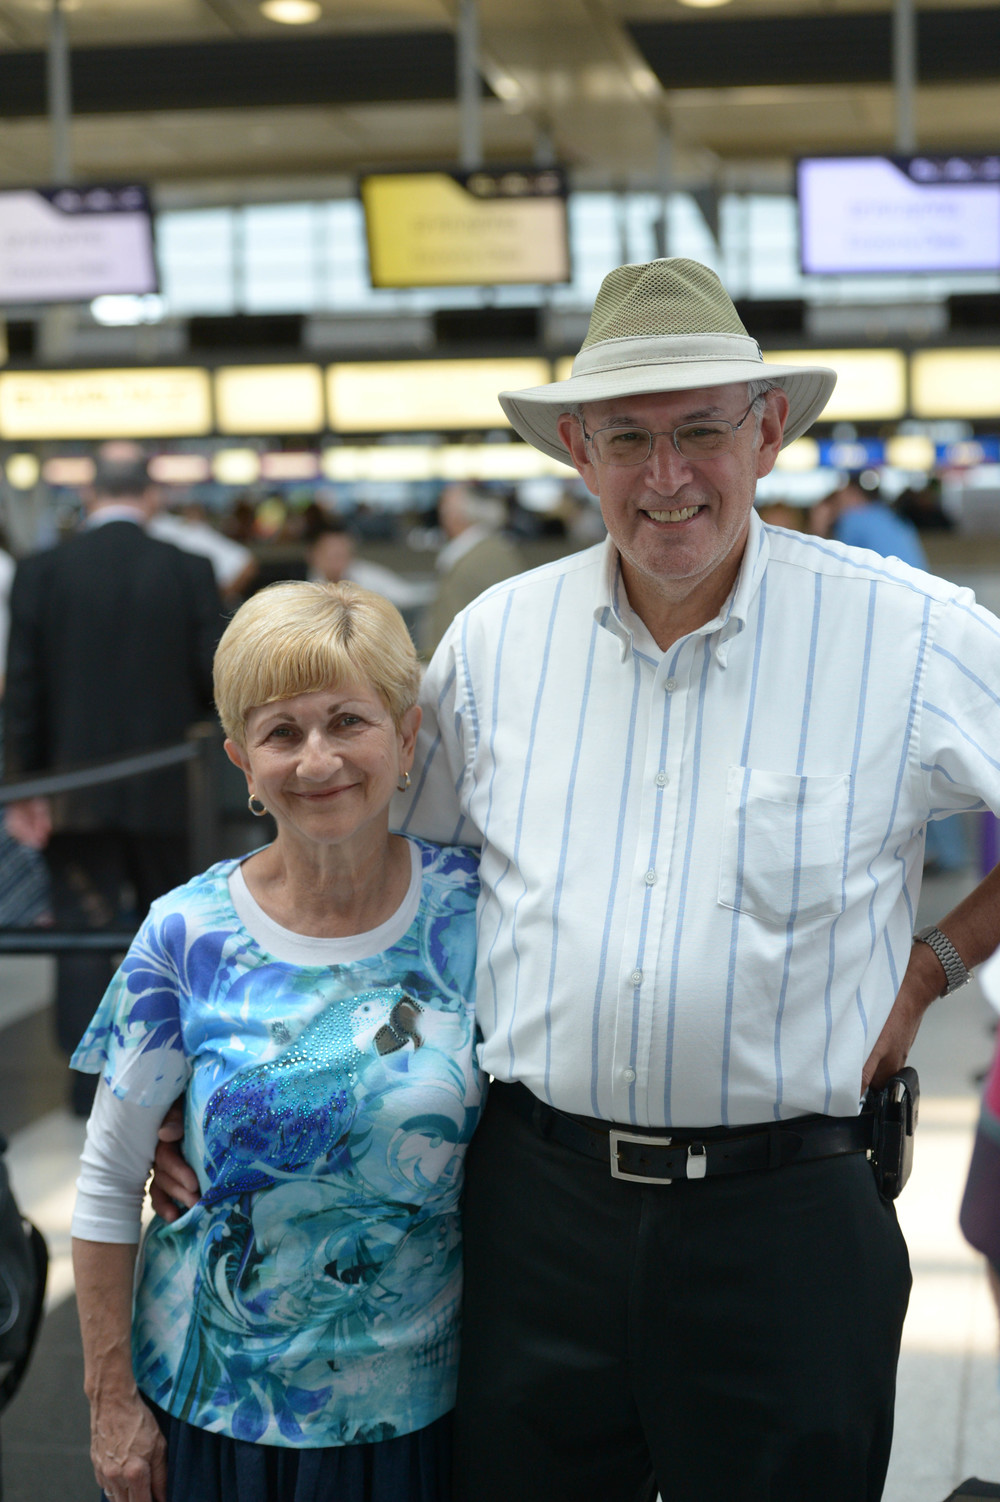 Click photo to download. Caption: Barbara and Kalman Feinberg of Teaneck, N.J., at New York's John F. Kennedy International Airport before making aliyah. They arrived in Israel on July 22. Credit: Shahar Azran.